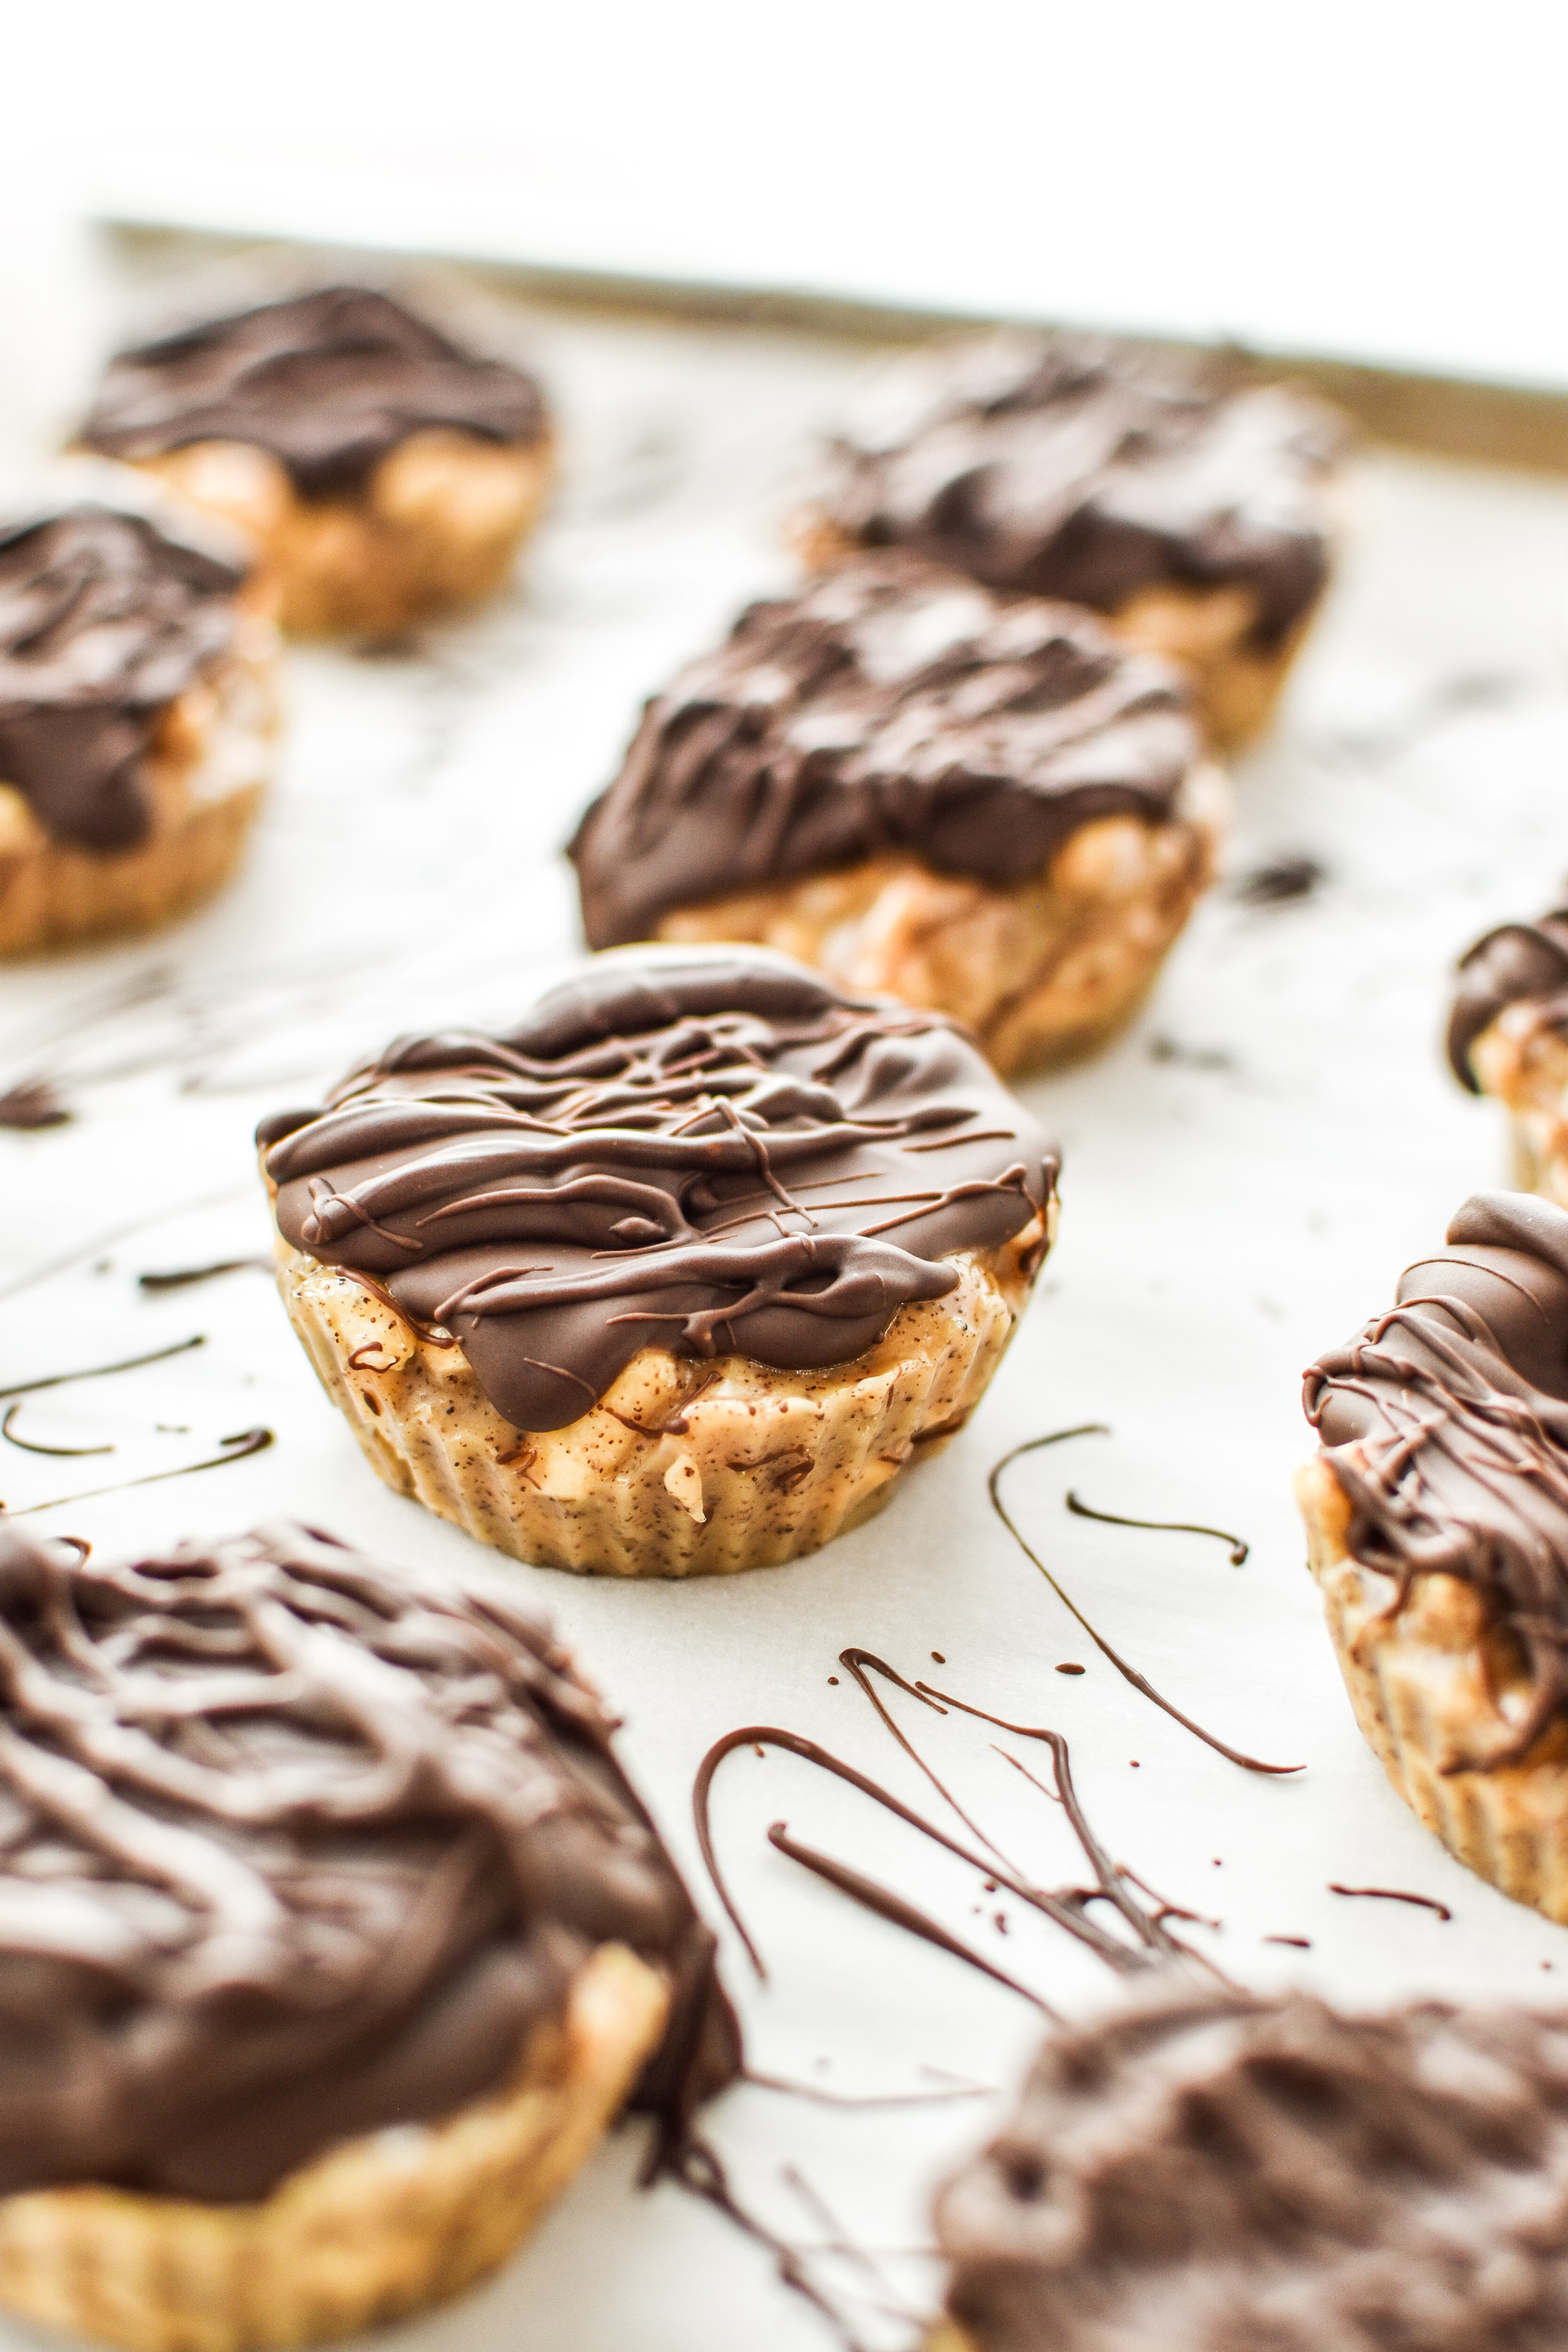 Espresso Crunch Cashew Butter Cups with chocolate drizzled on top.